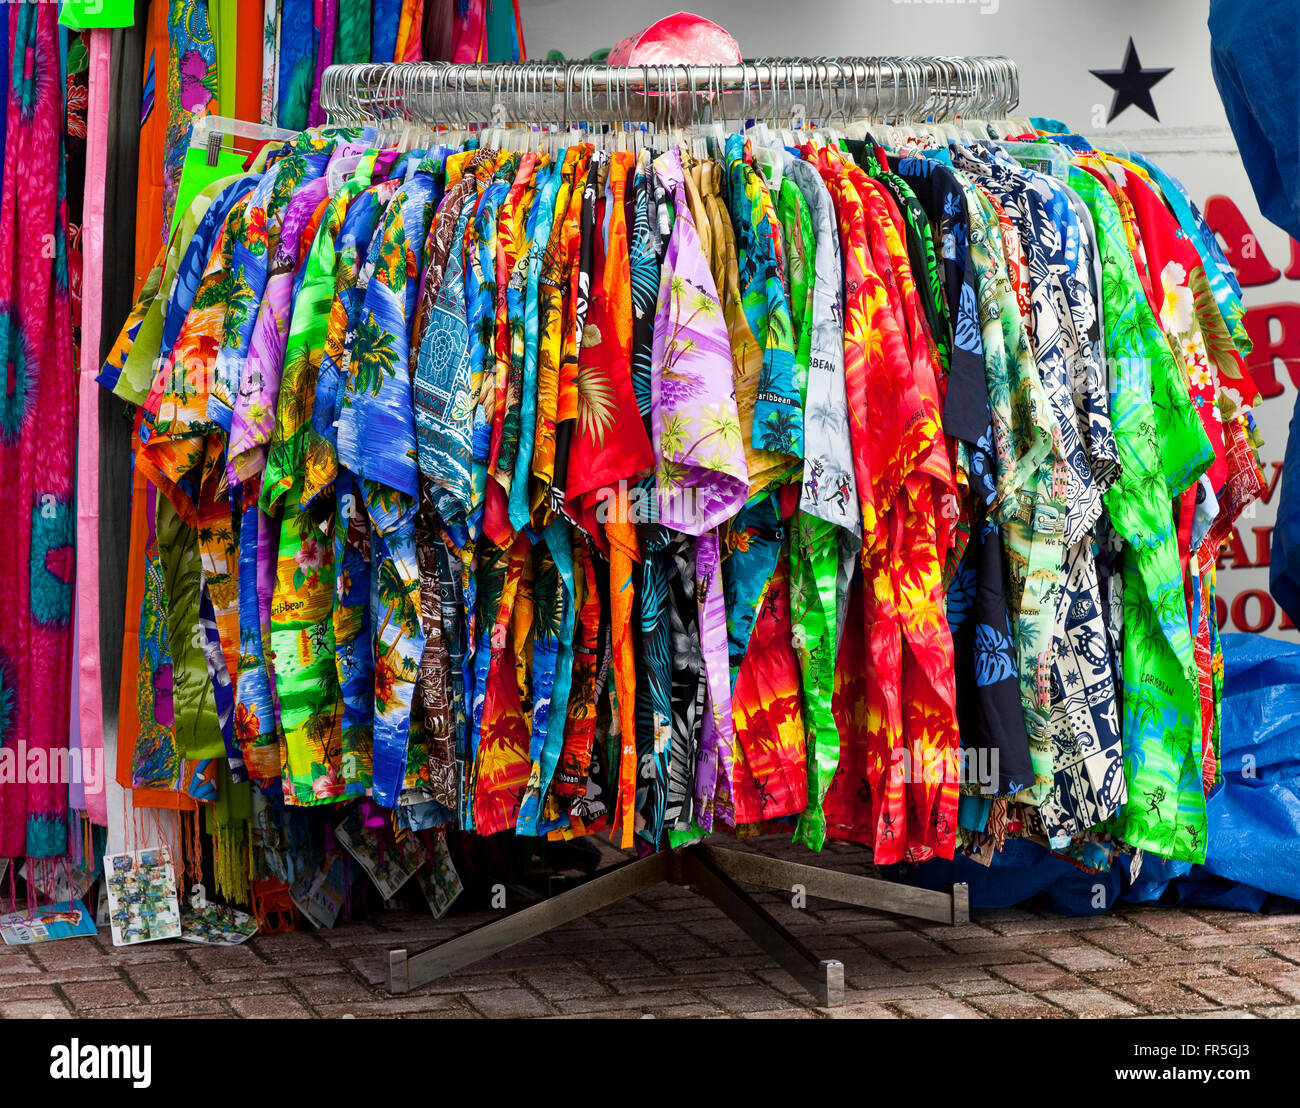 A rack of colorful shirts for sale in a market at St ...